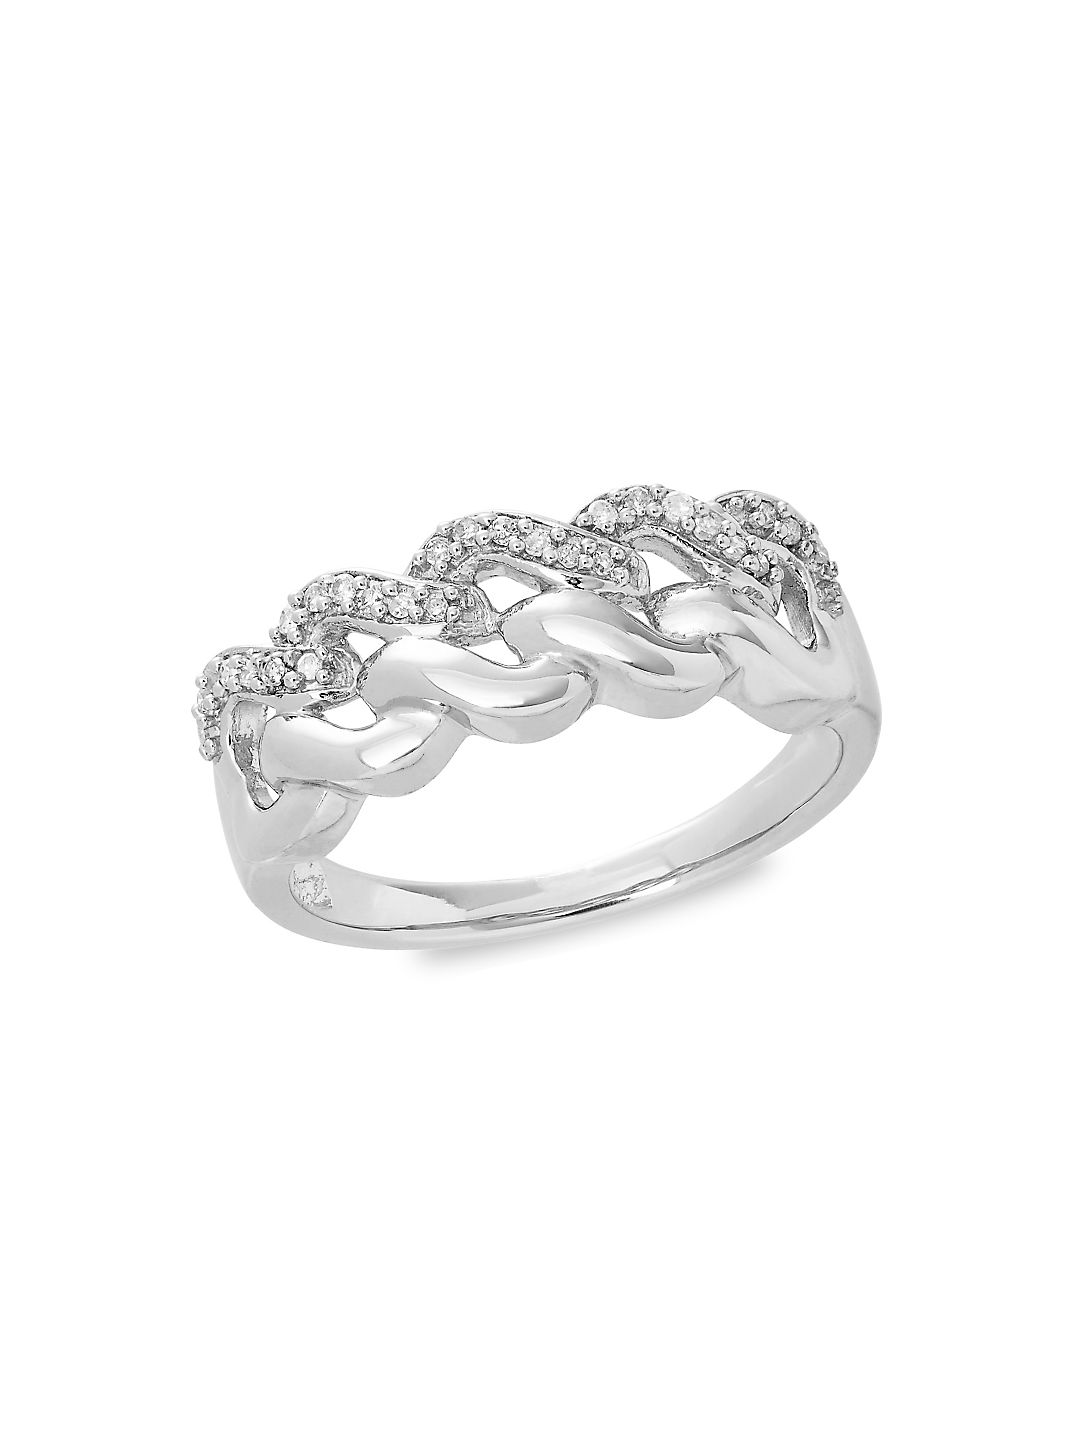 Cut-Out Sterling Silver & Diamond Ring